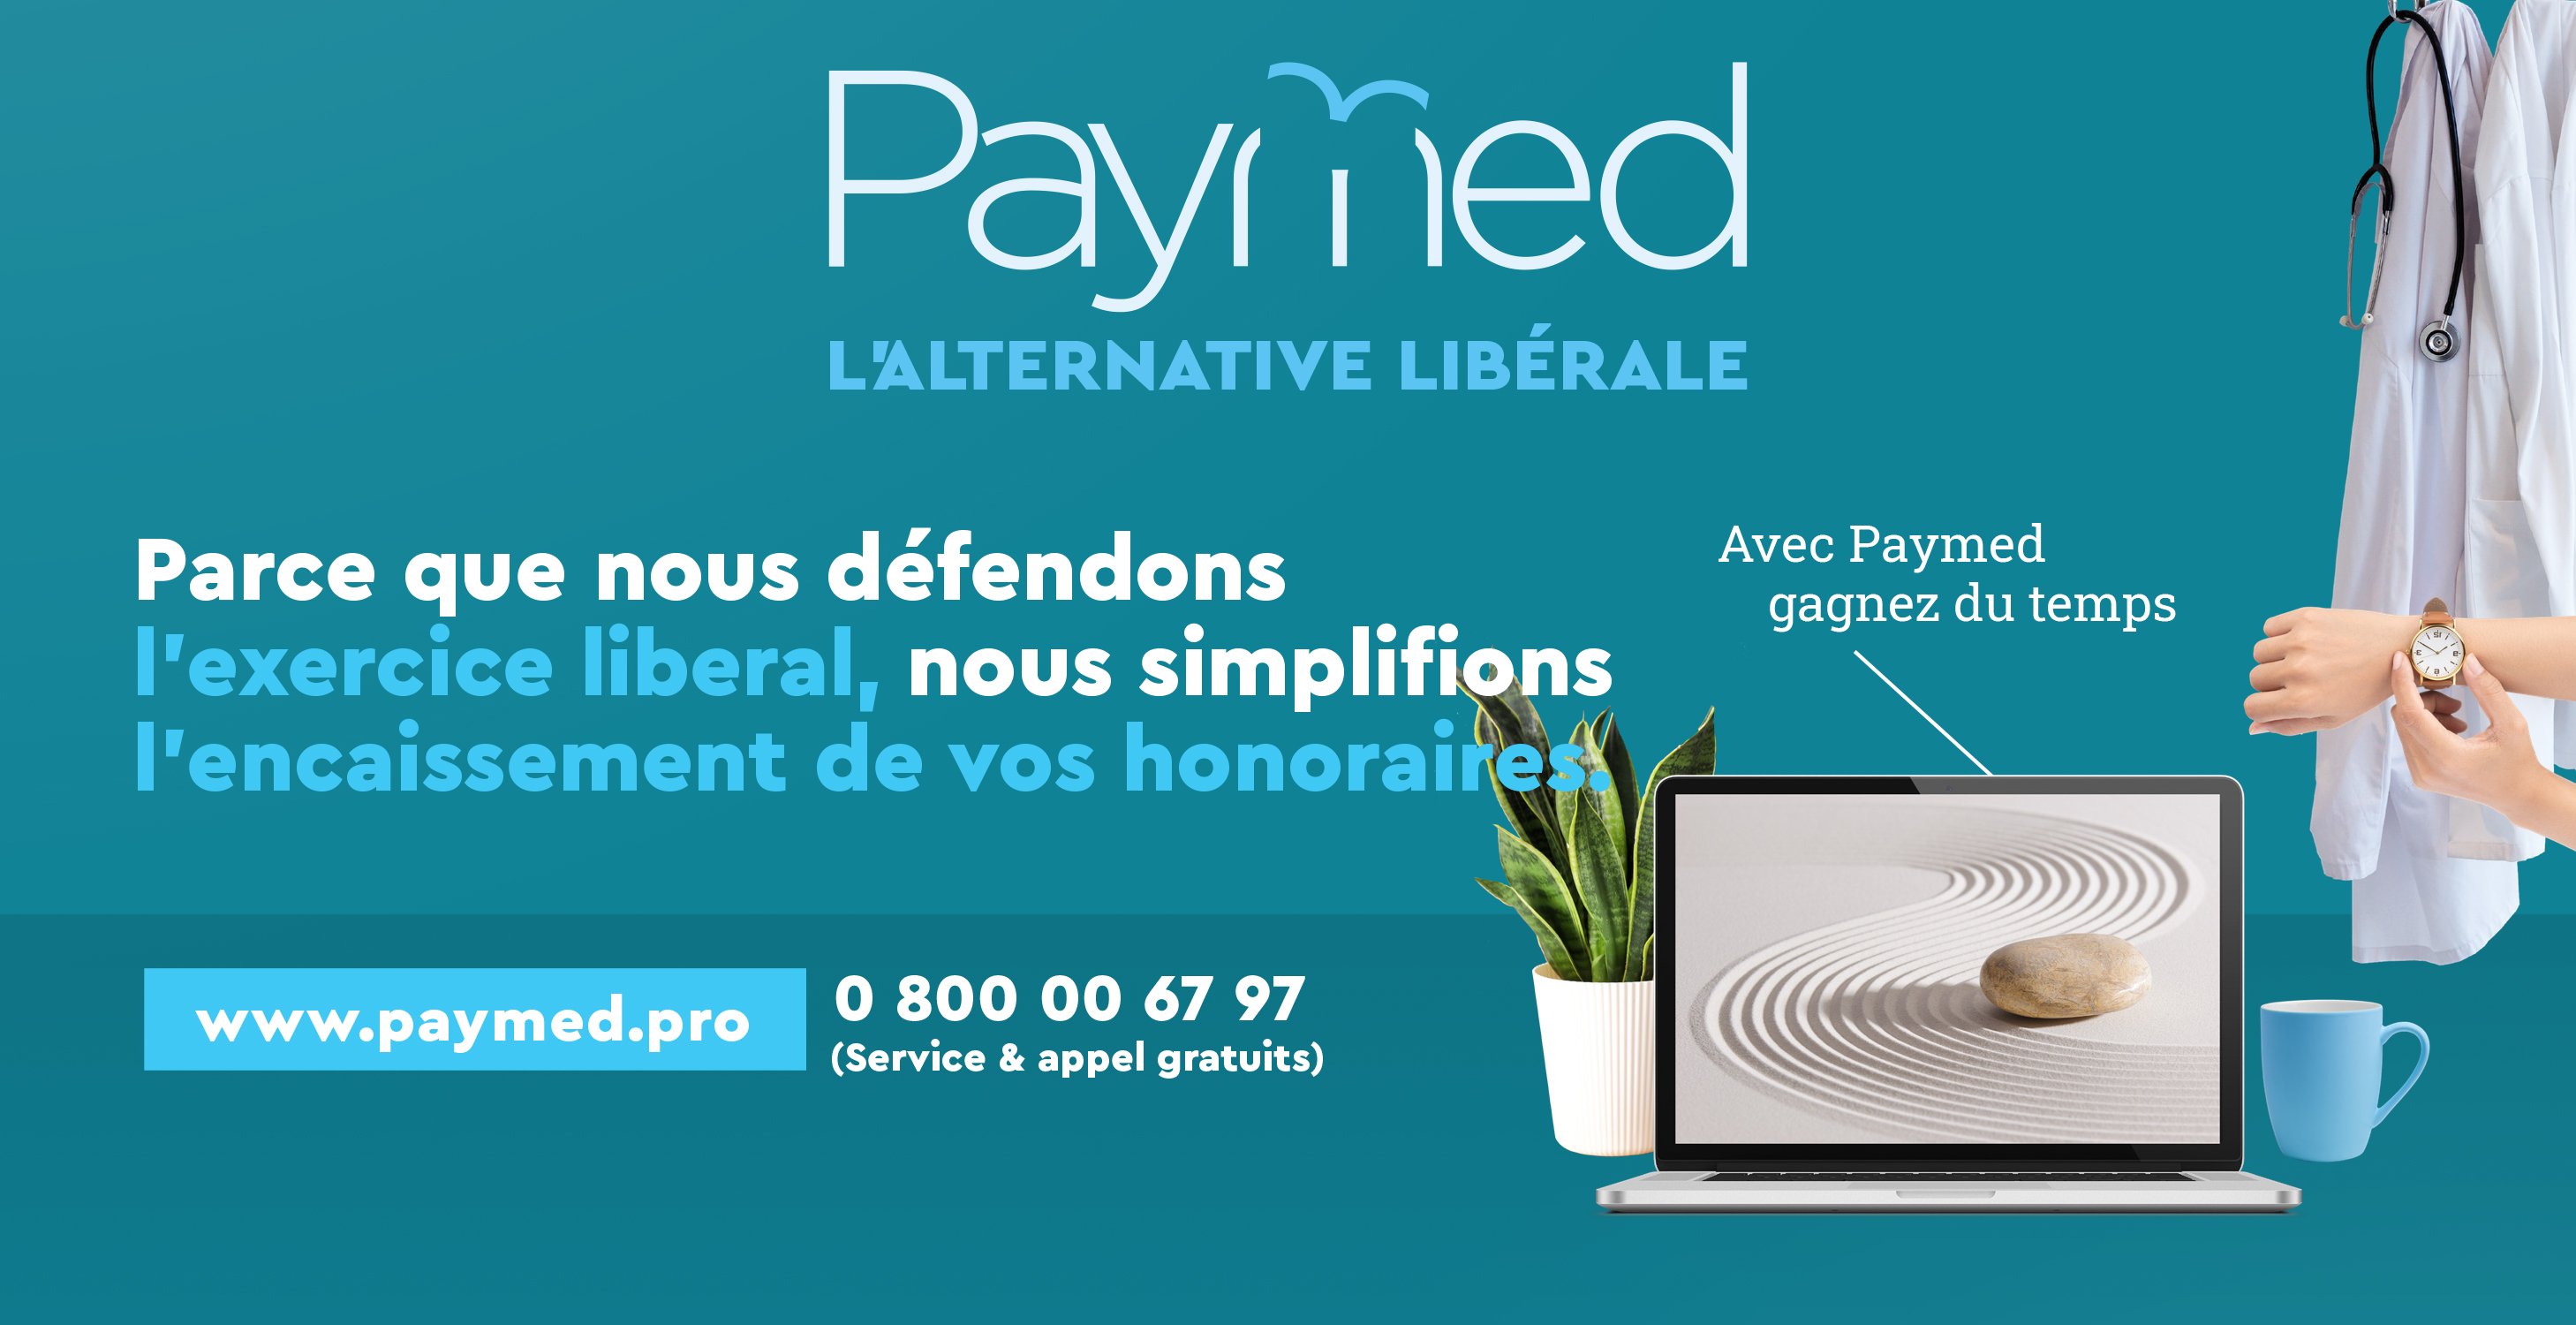 Paymed